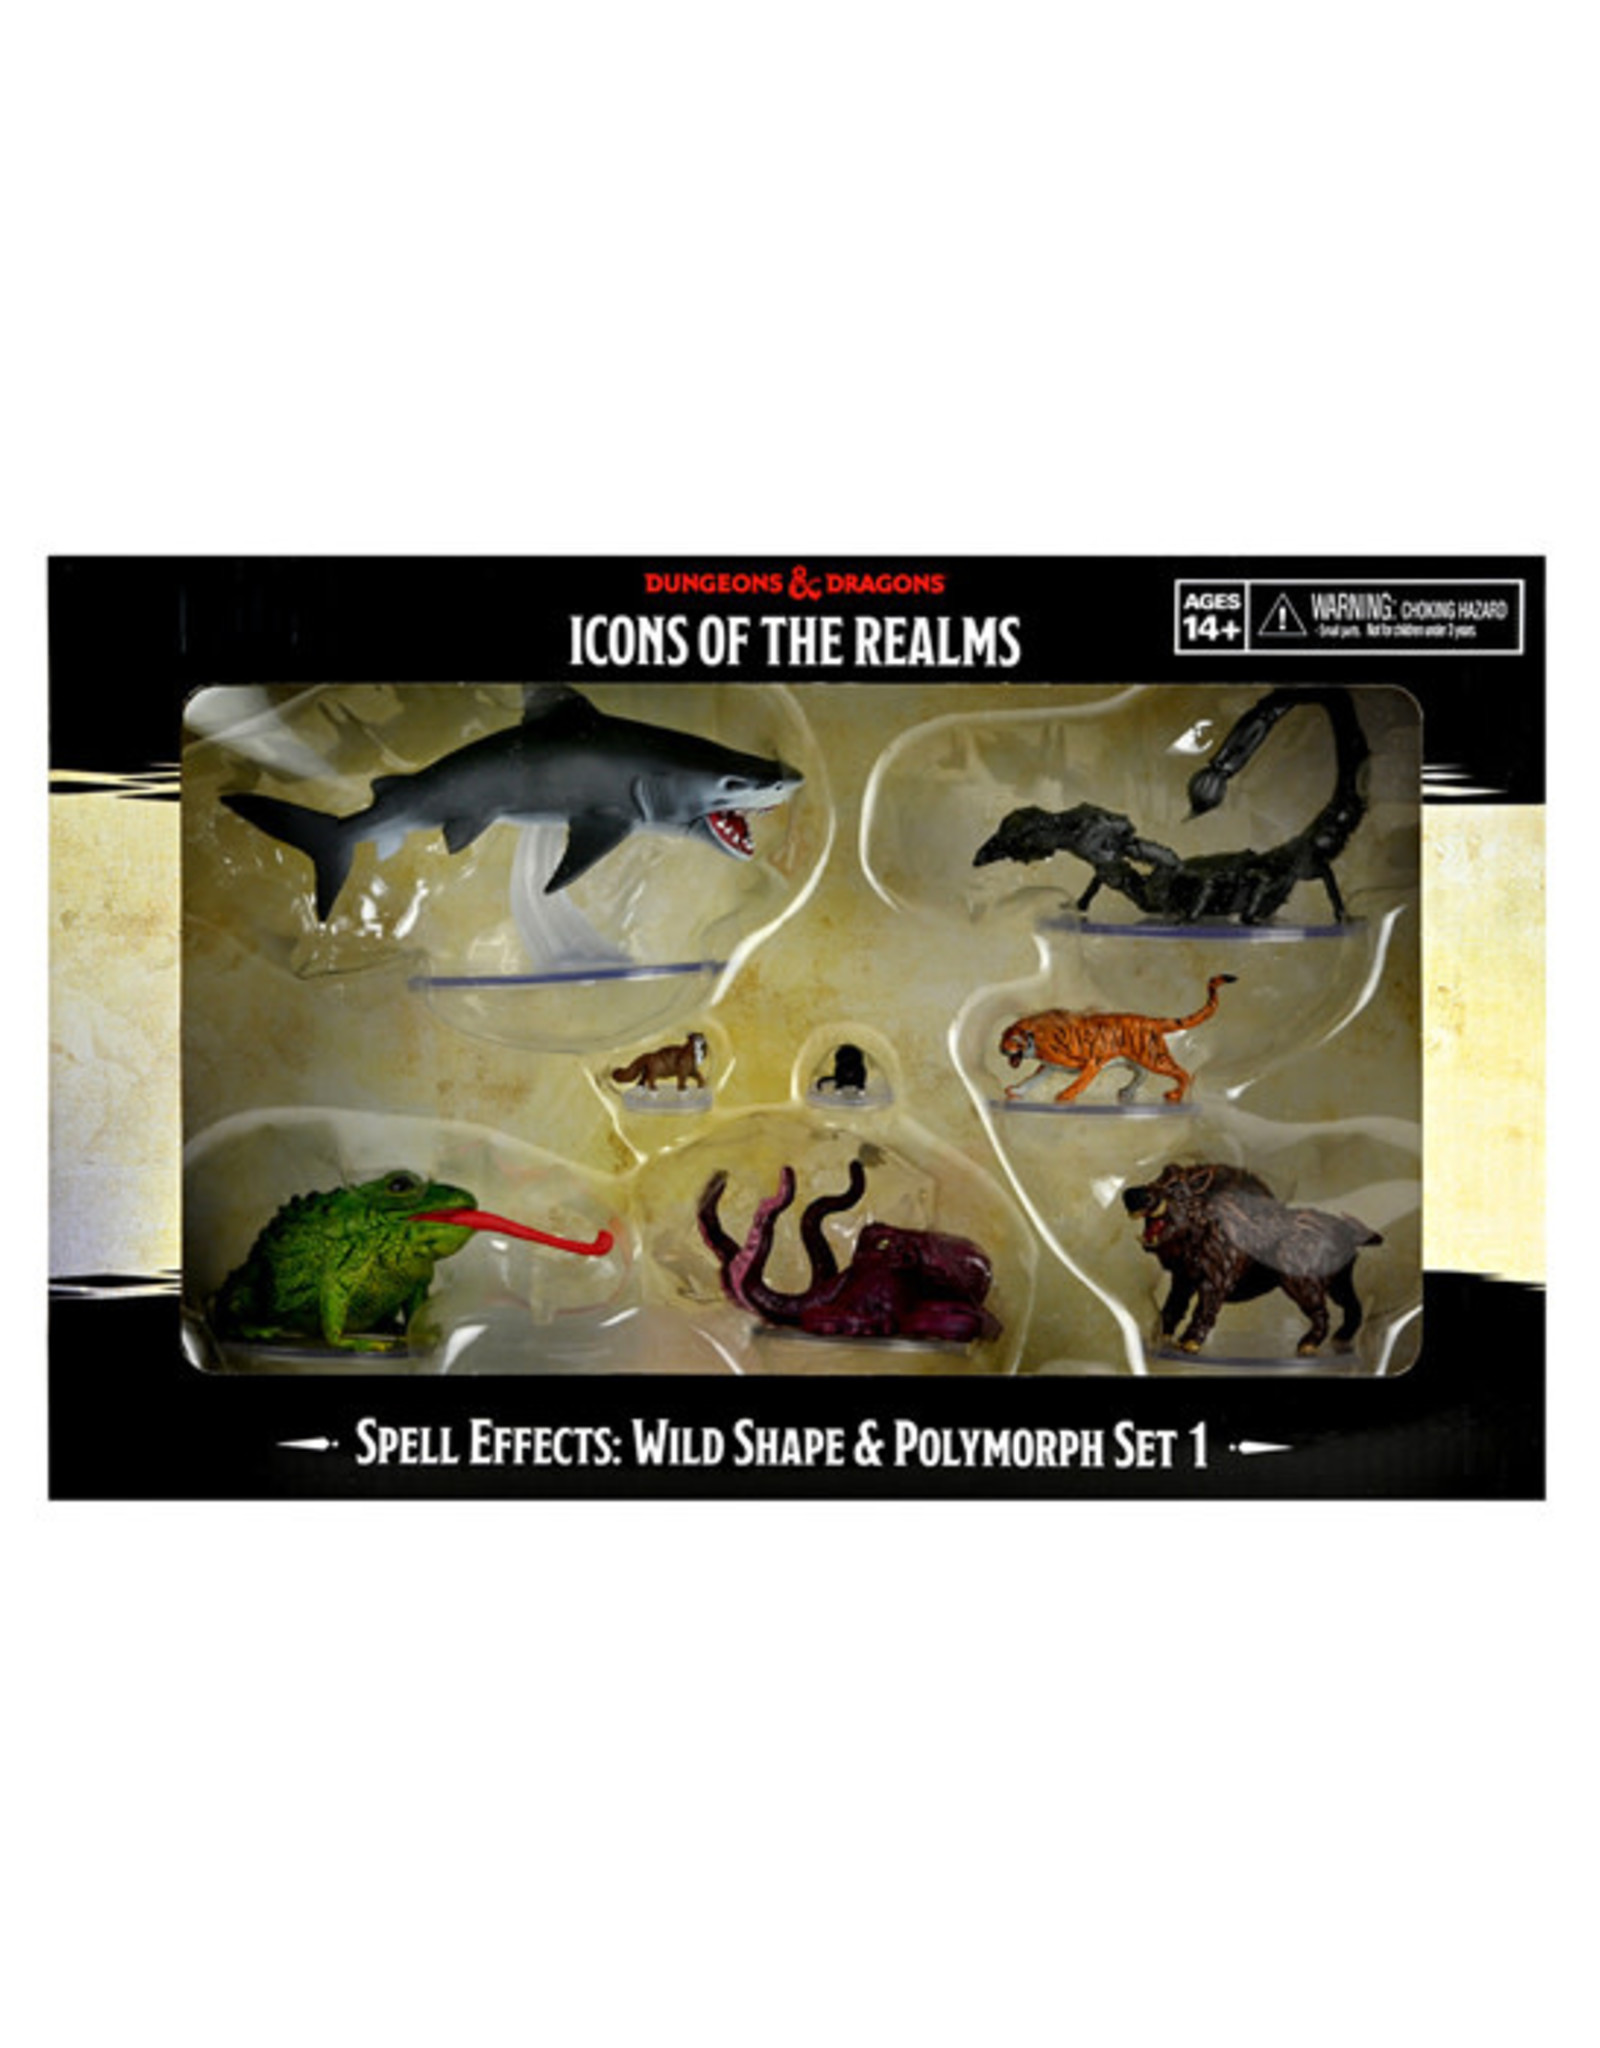 Dungeons & Dragons Dungeons & Dragons: Spell Effects - Wild Shape & Polymorph - Set 1